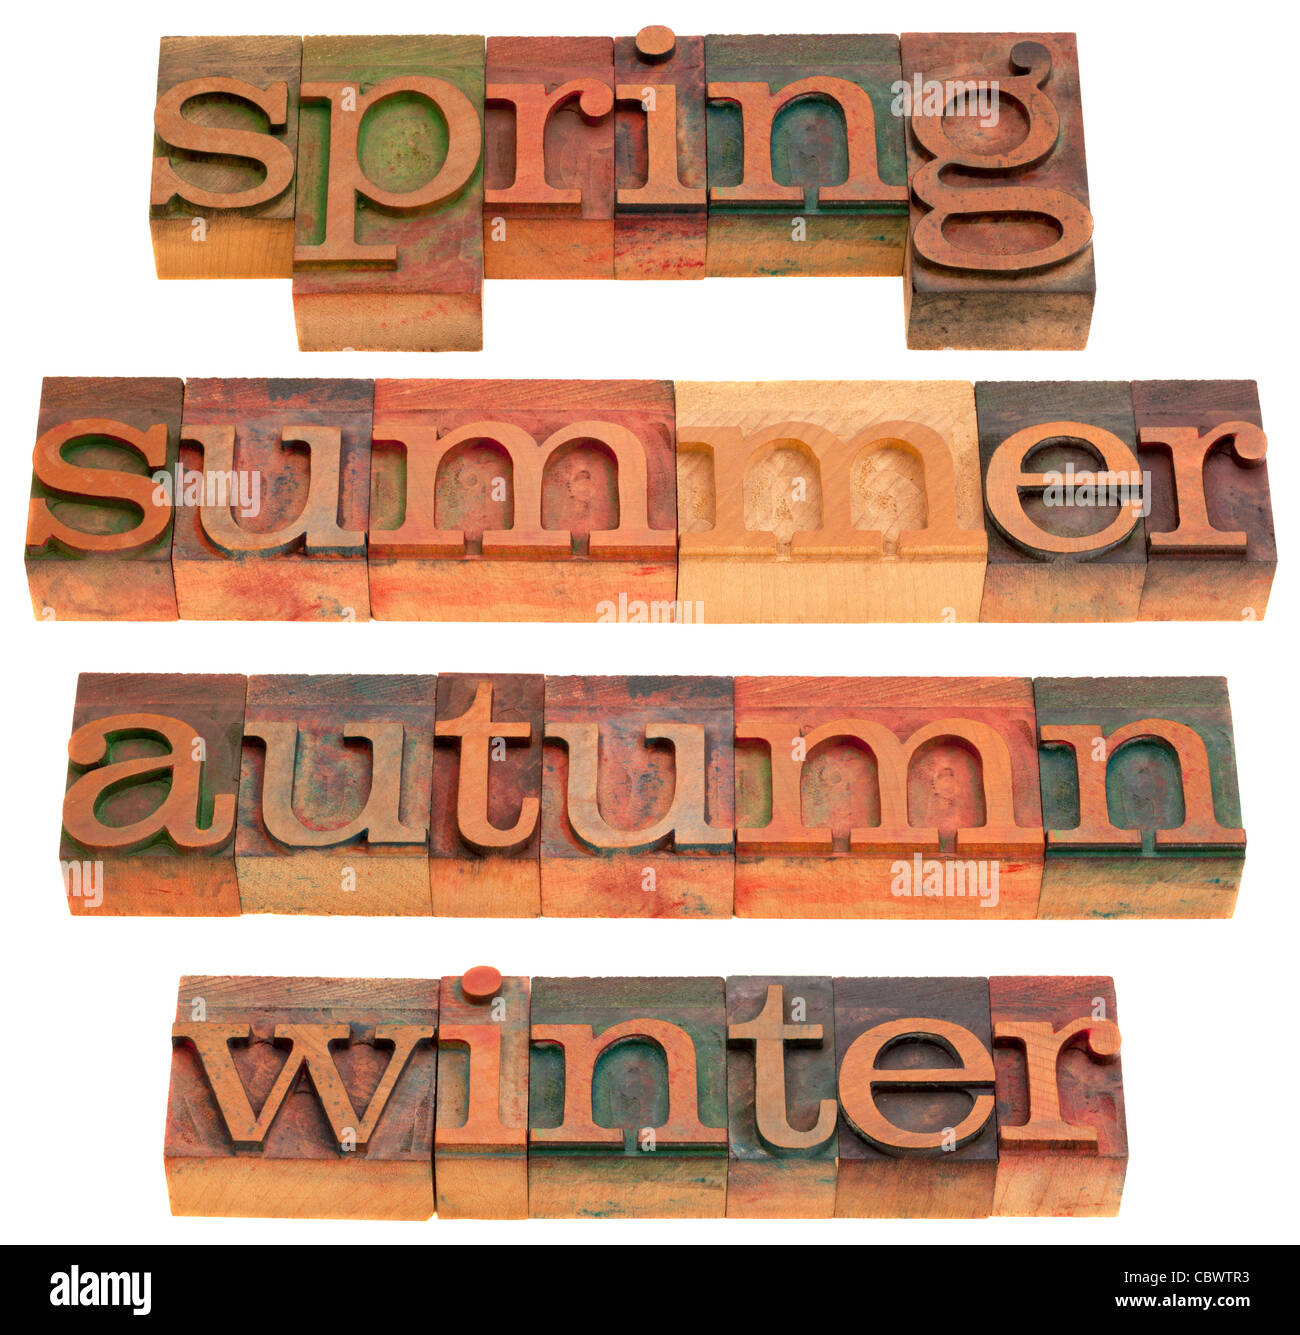 four seasons (spring, summer, autumn and winter) in vintage wooden letterpress printing blocks isolated on white - Stock Image